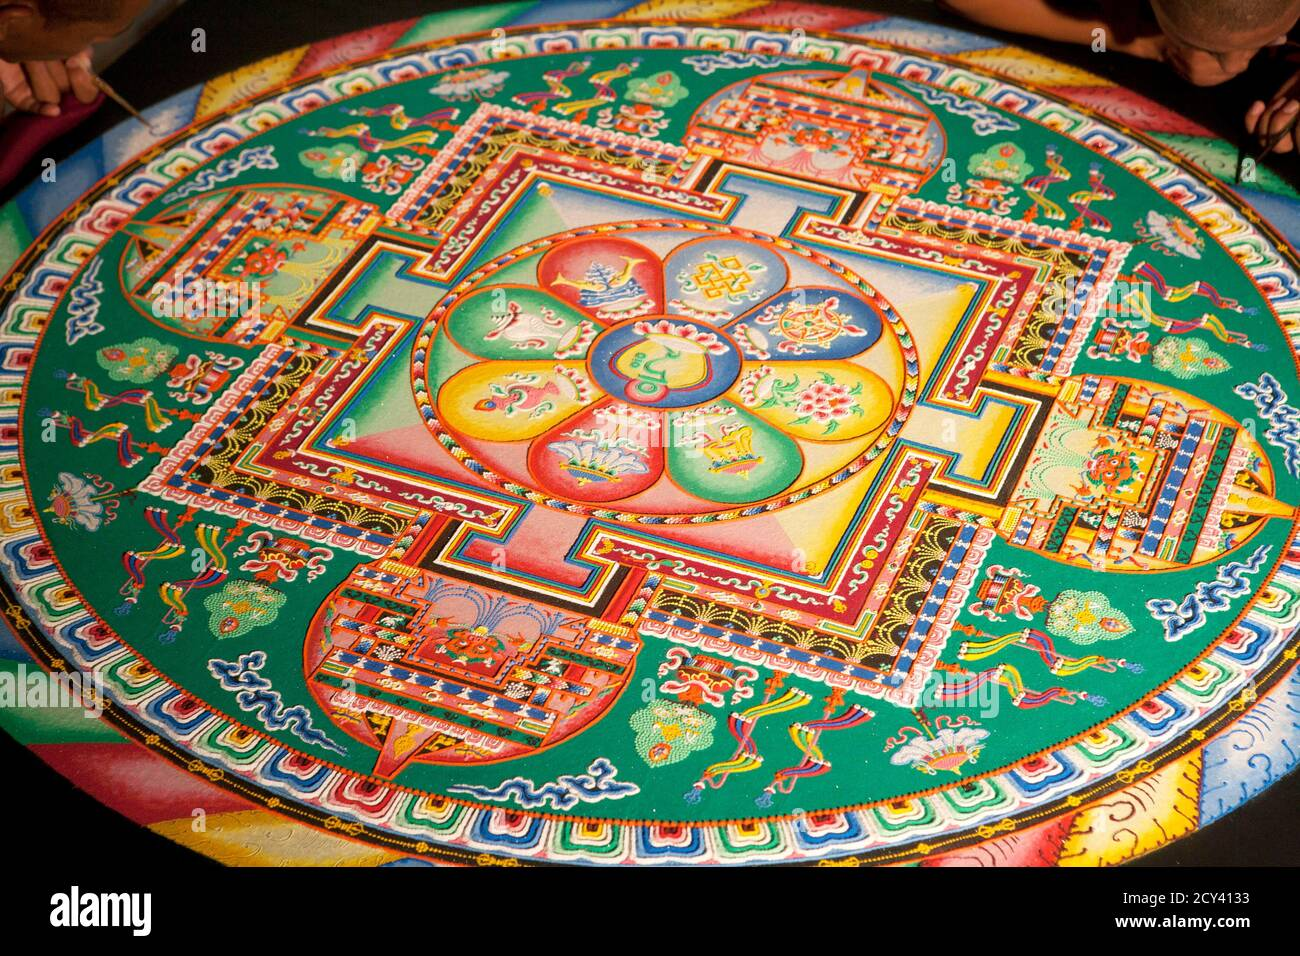 Tibetan monks work on a sand mandala during the First Tibetan Cultural Maya meeting in the Riviera Maya at Playa del Carmen September 11, 2011. The inaugural meeting aims to encourage the exchange of knowledge between these two ancient cultures and to share values related to the preservation of life and respect for nature. REUTERS/Victor Ruiz Garcia (MEXICO - Tags: RELIGION) Stock Photo